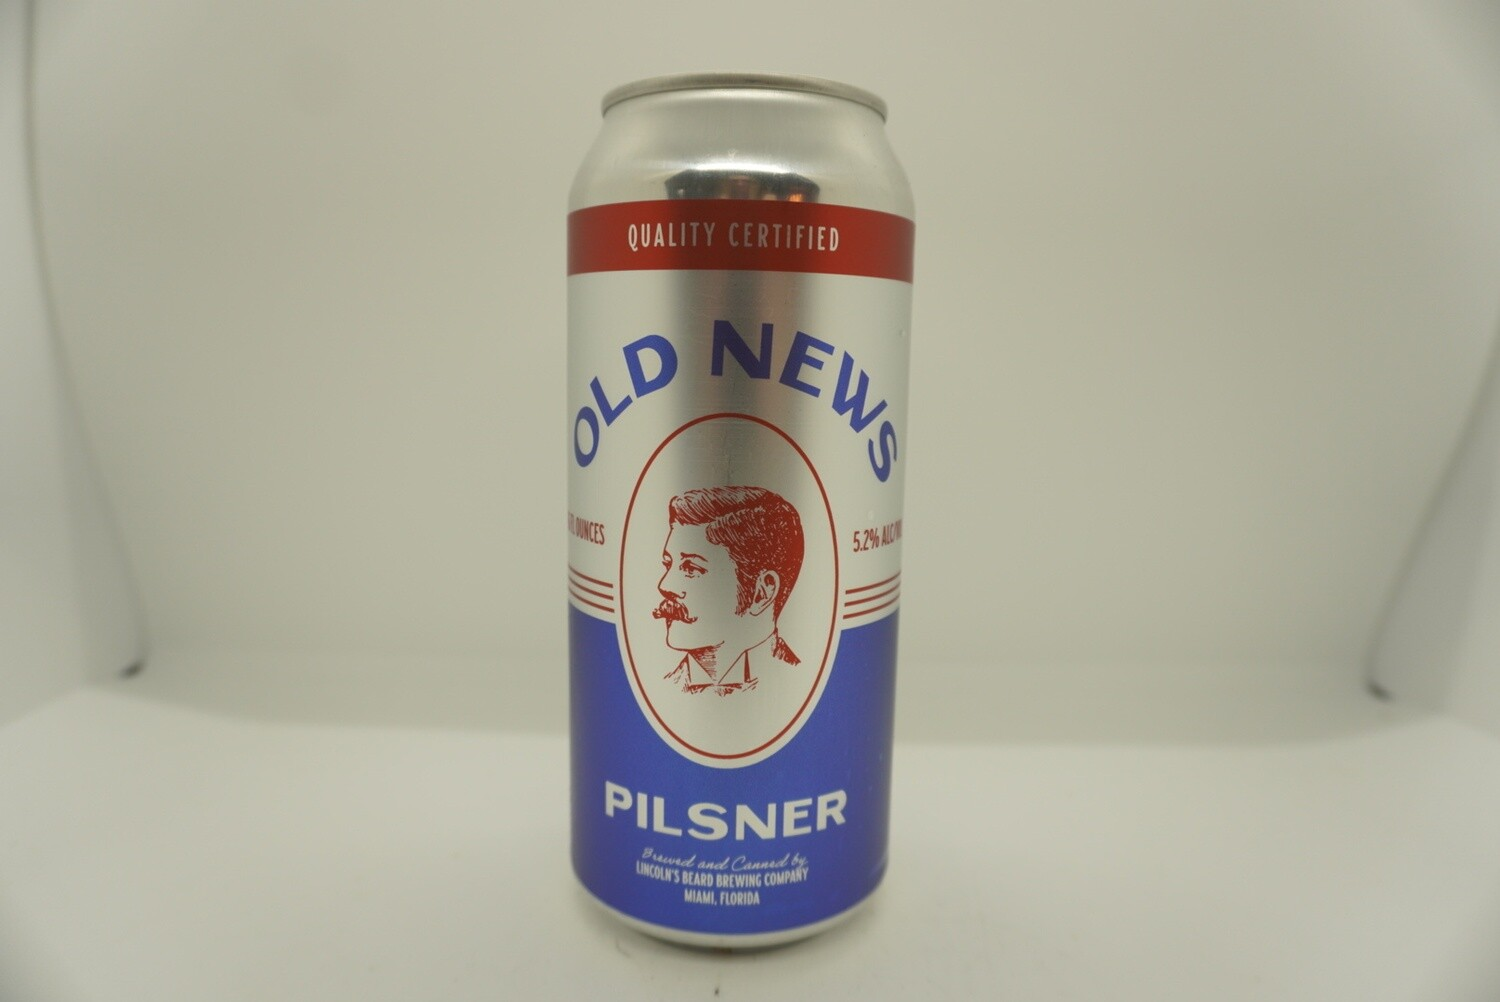 Lincoln's Beard - Old News Pilsner - Pilsner - 4.8% ABV - 16oz Can